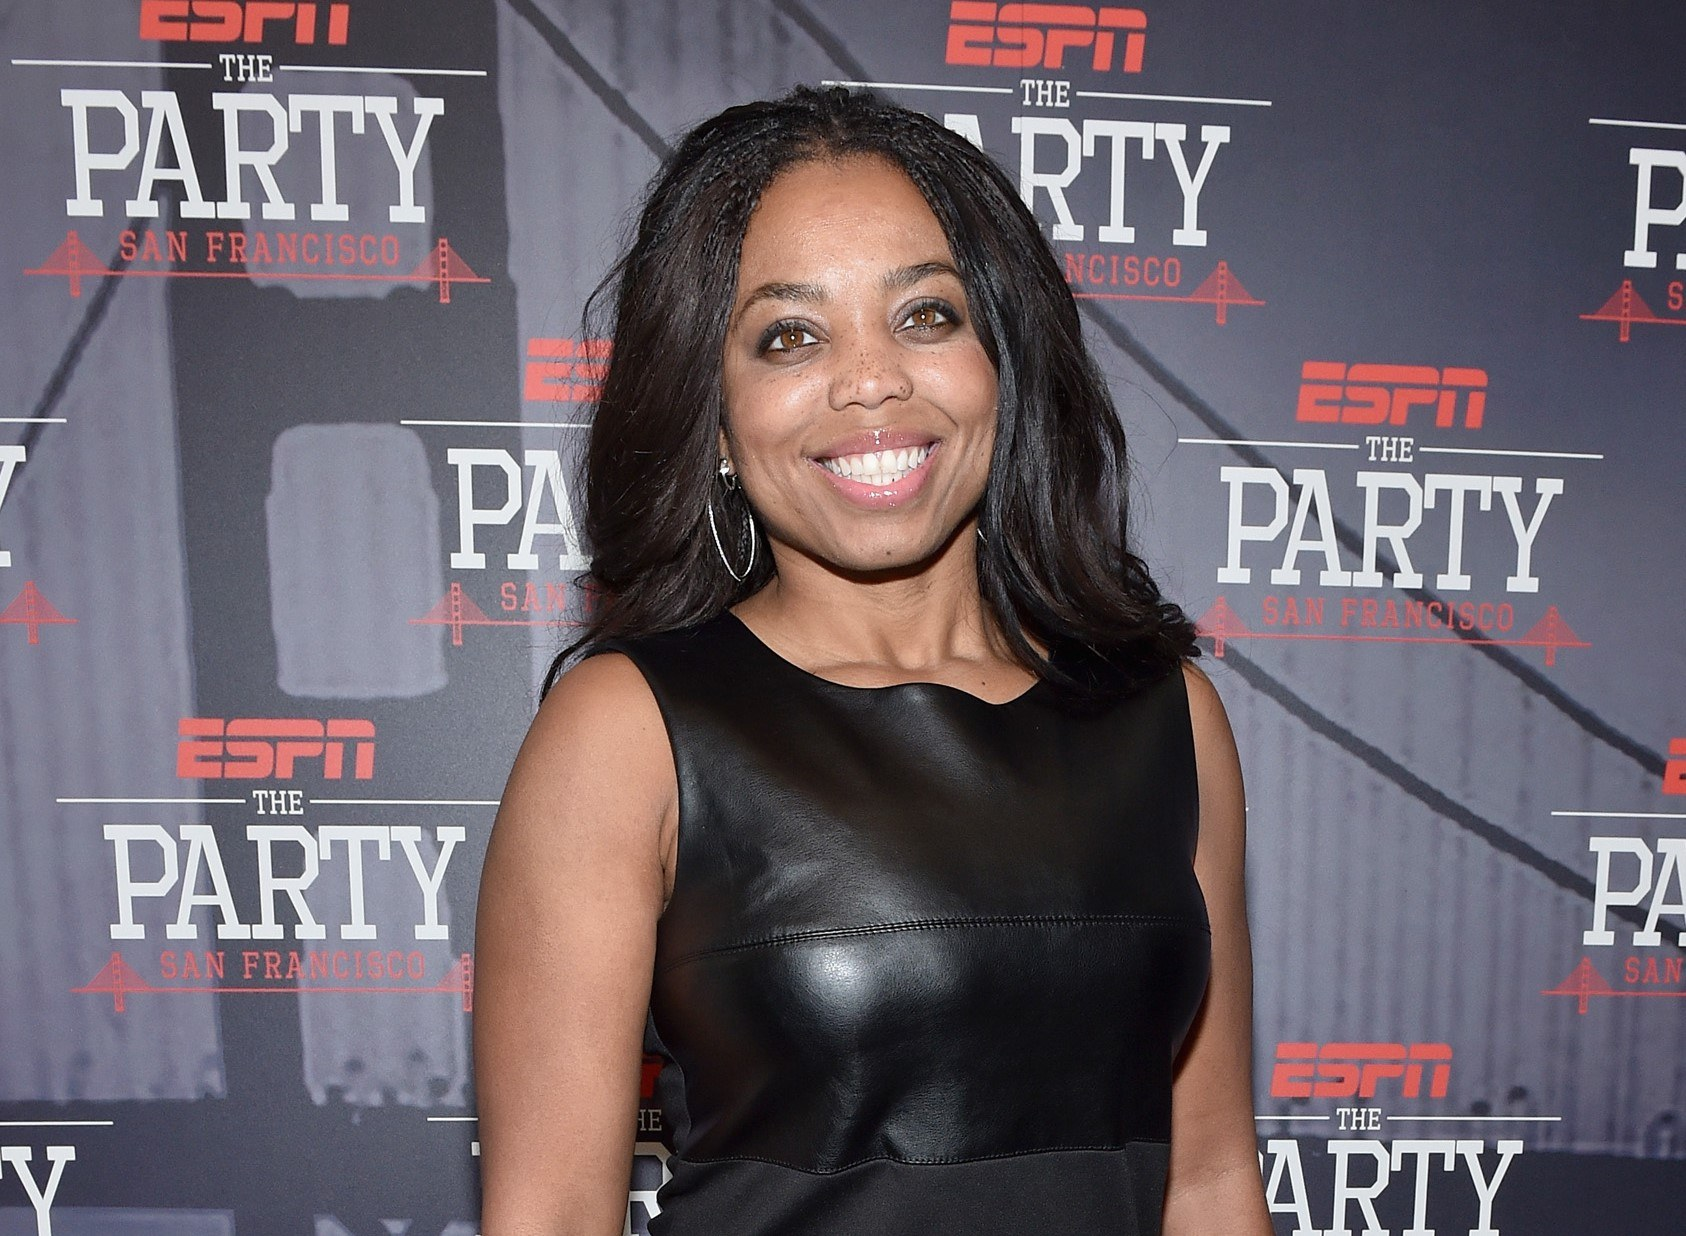 ESPN Journalist Jemele Hill